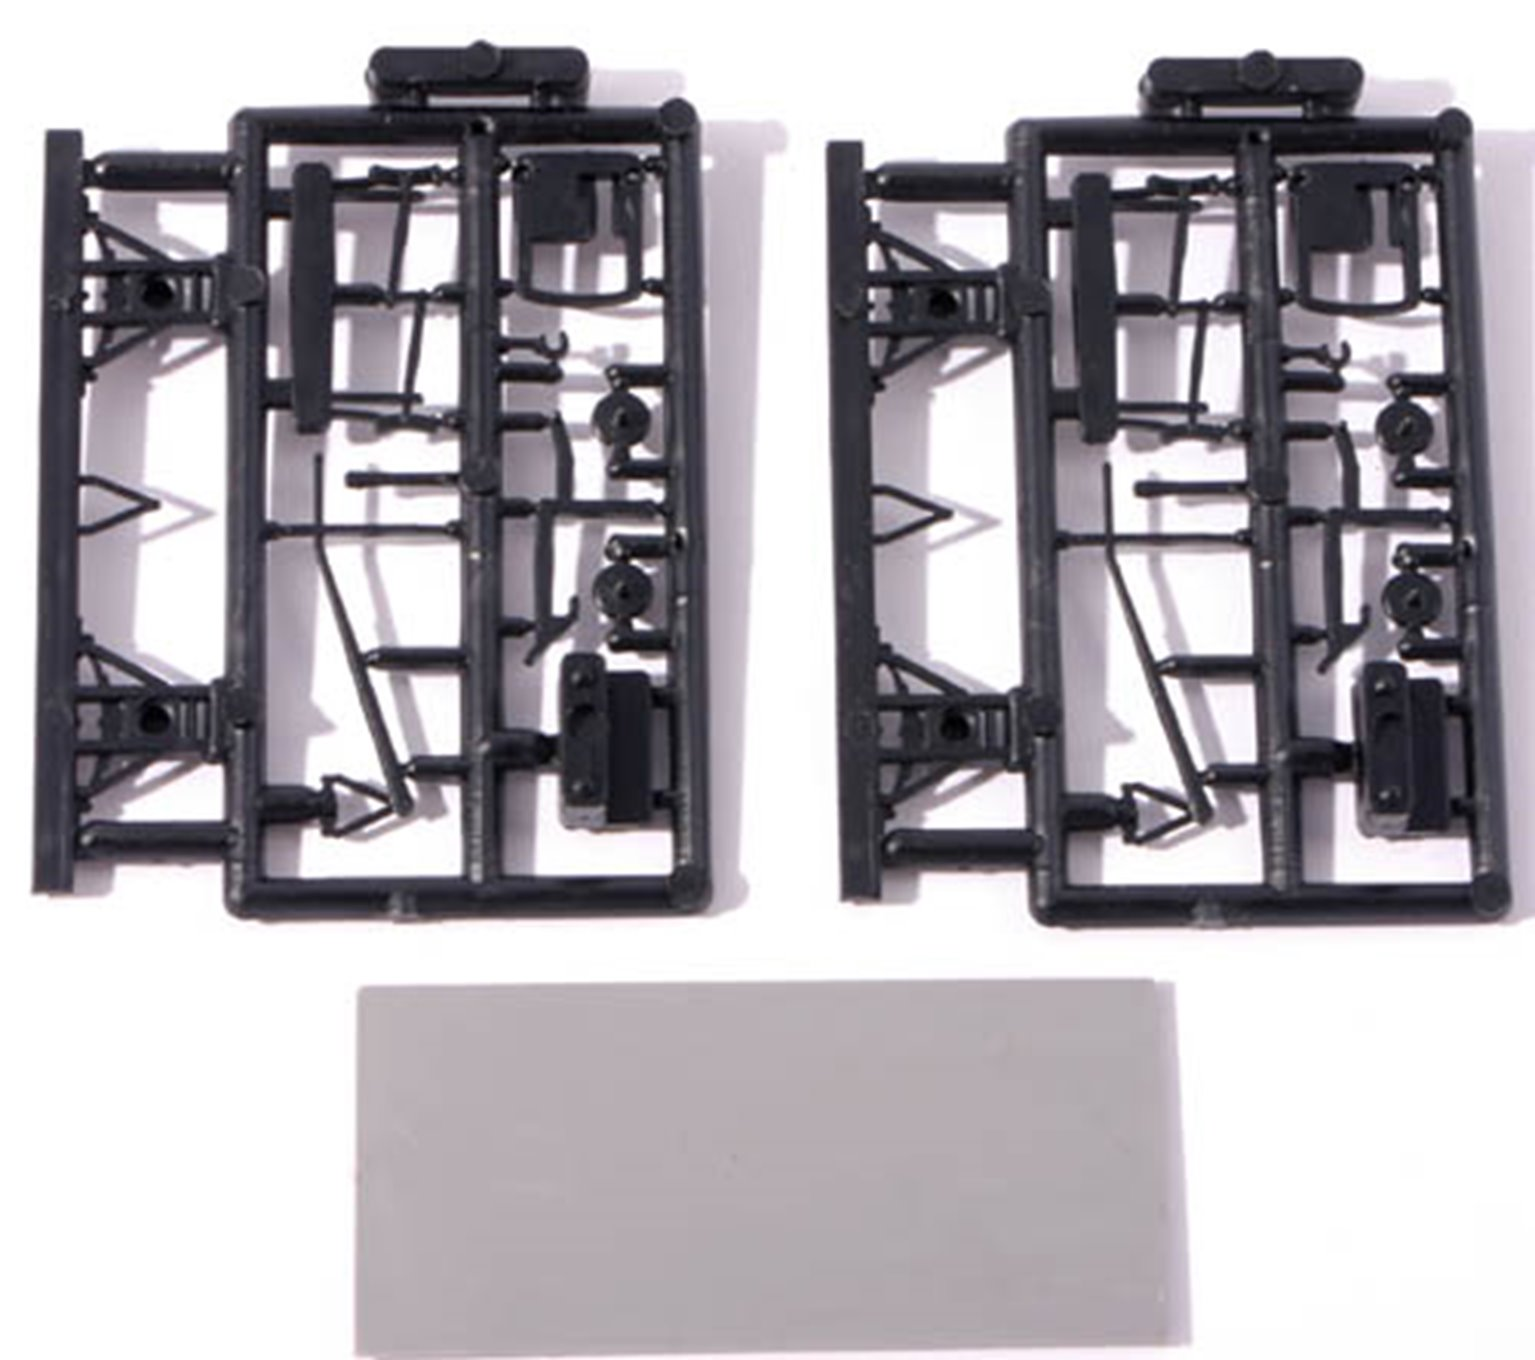 BR/Rch 9' Unfitted Underframe Kit